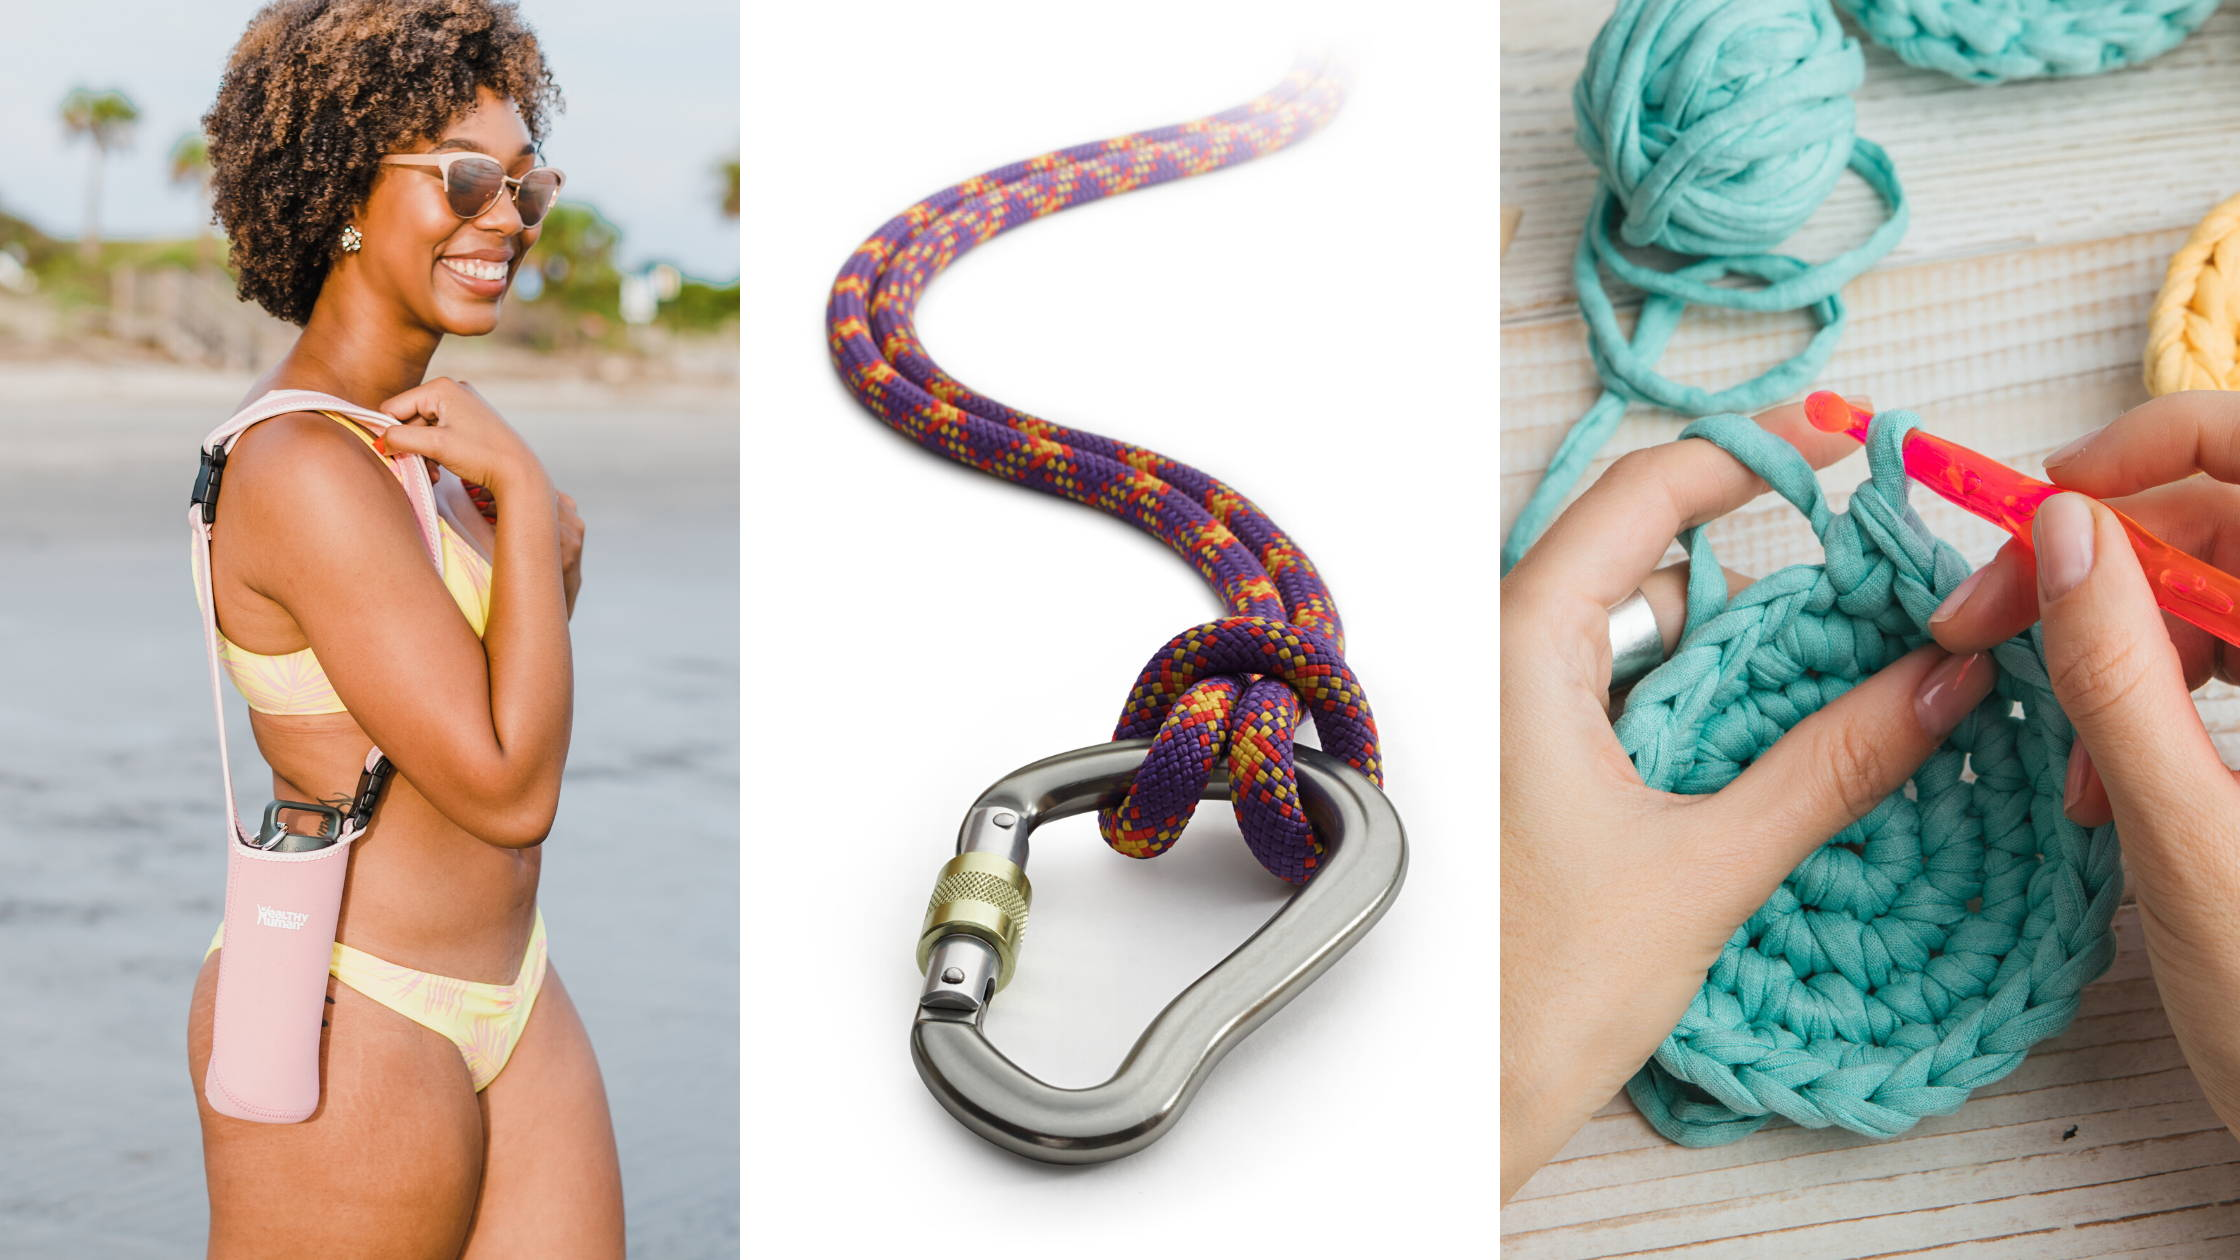 Three types of water bottle holders - sling, carabiner and crocheted holder